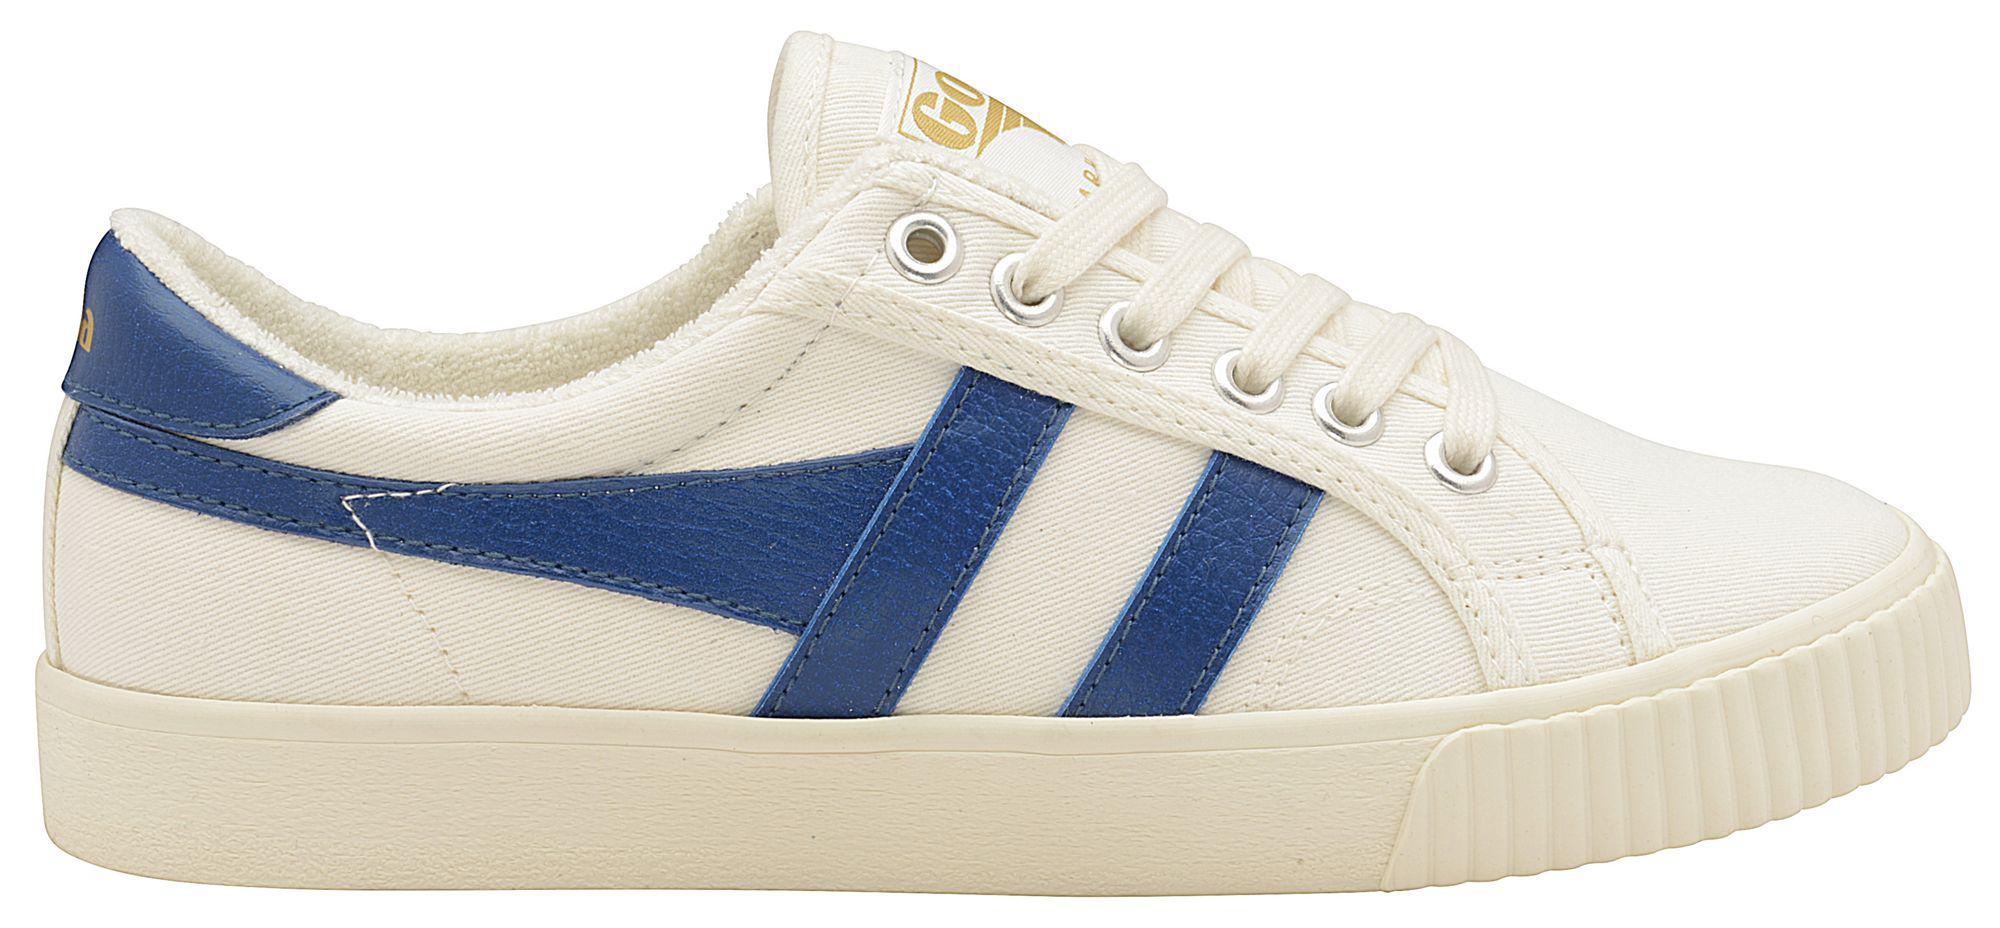 Off white and vintage blue 'Mark Cox' ladies trainers outlet Cheapest nRCFMpFh9i